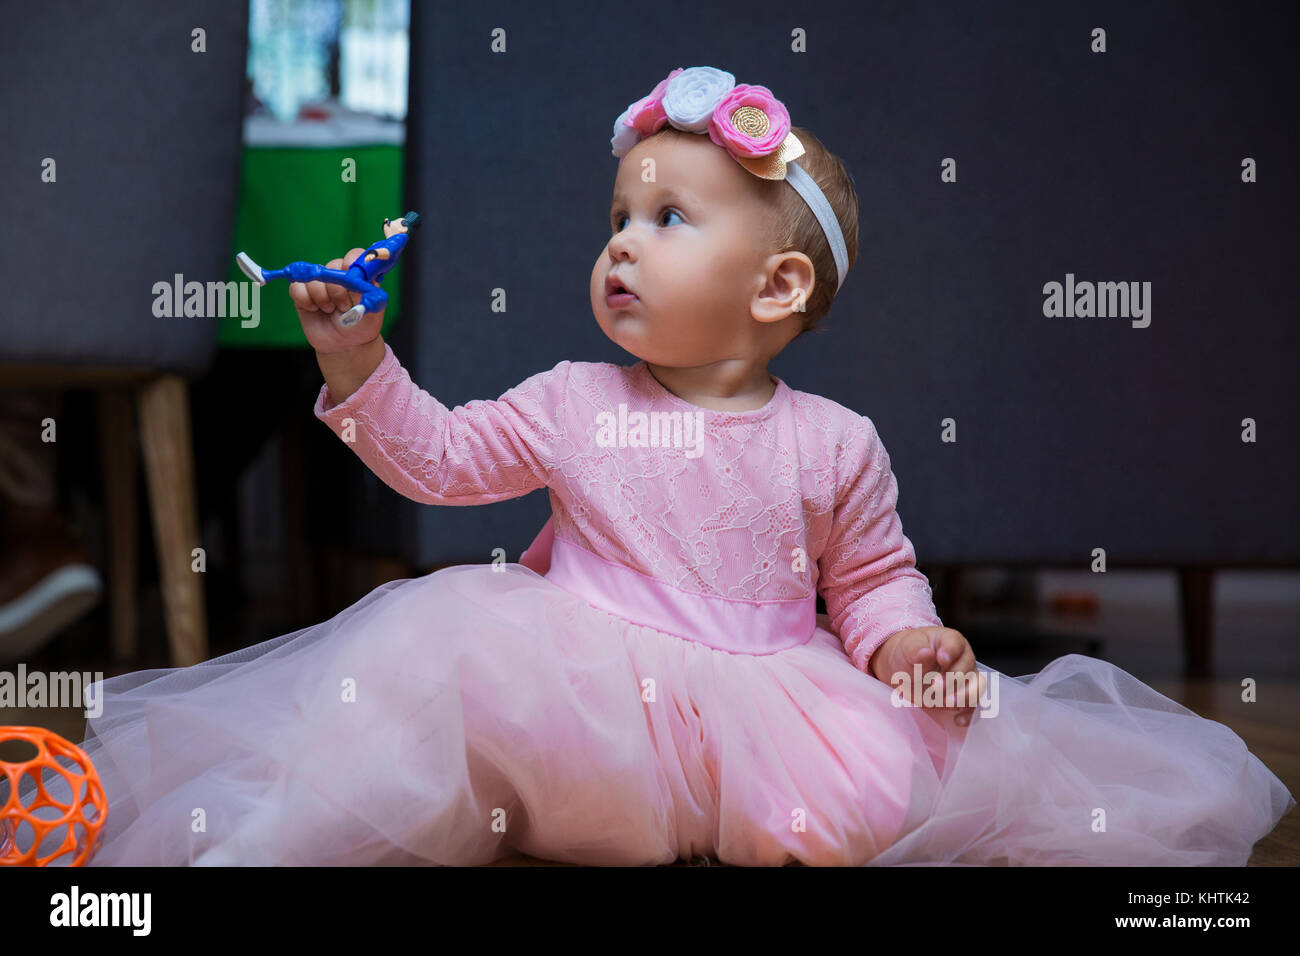 Brunette baby girl in pink dress sitting on the floor looking to the right - Stock Image